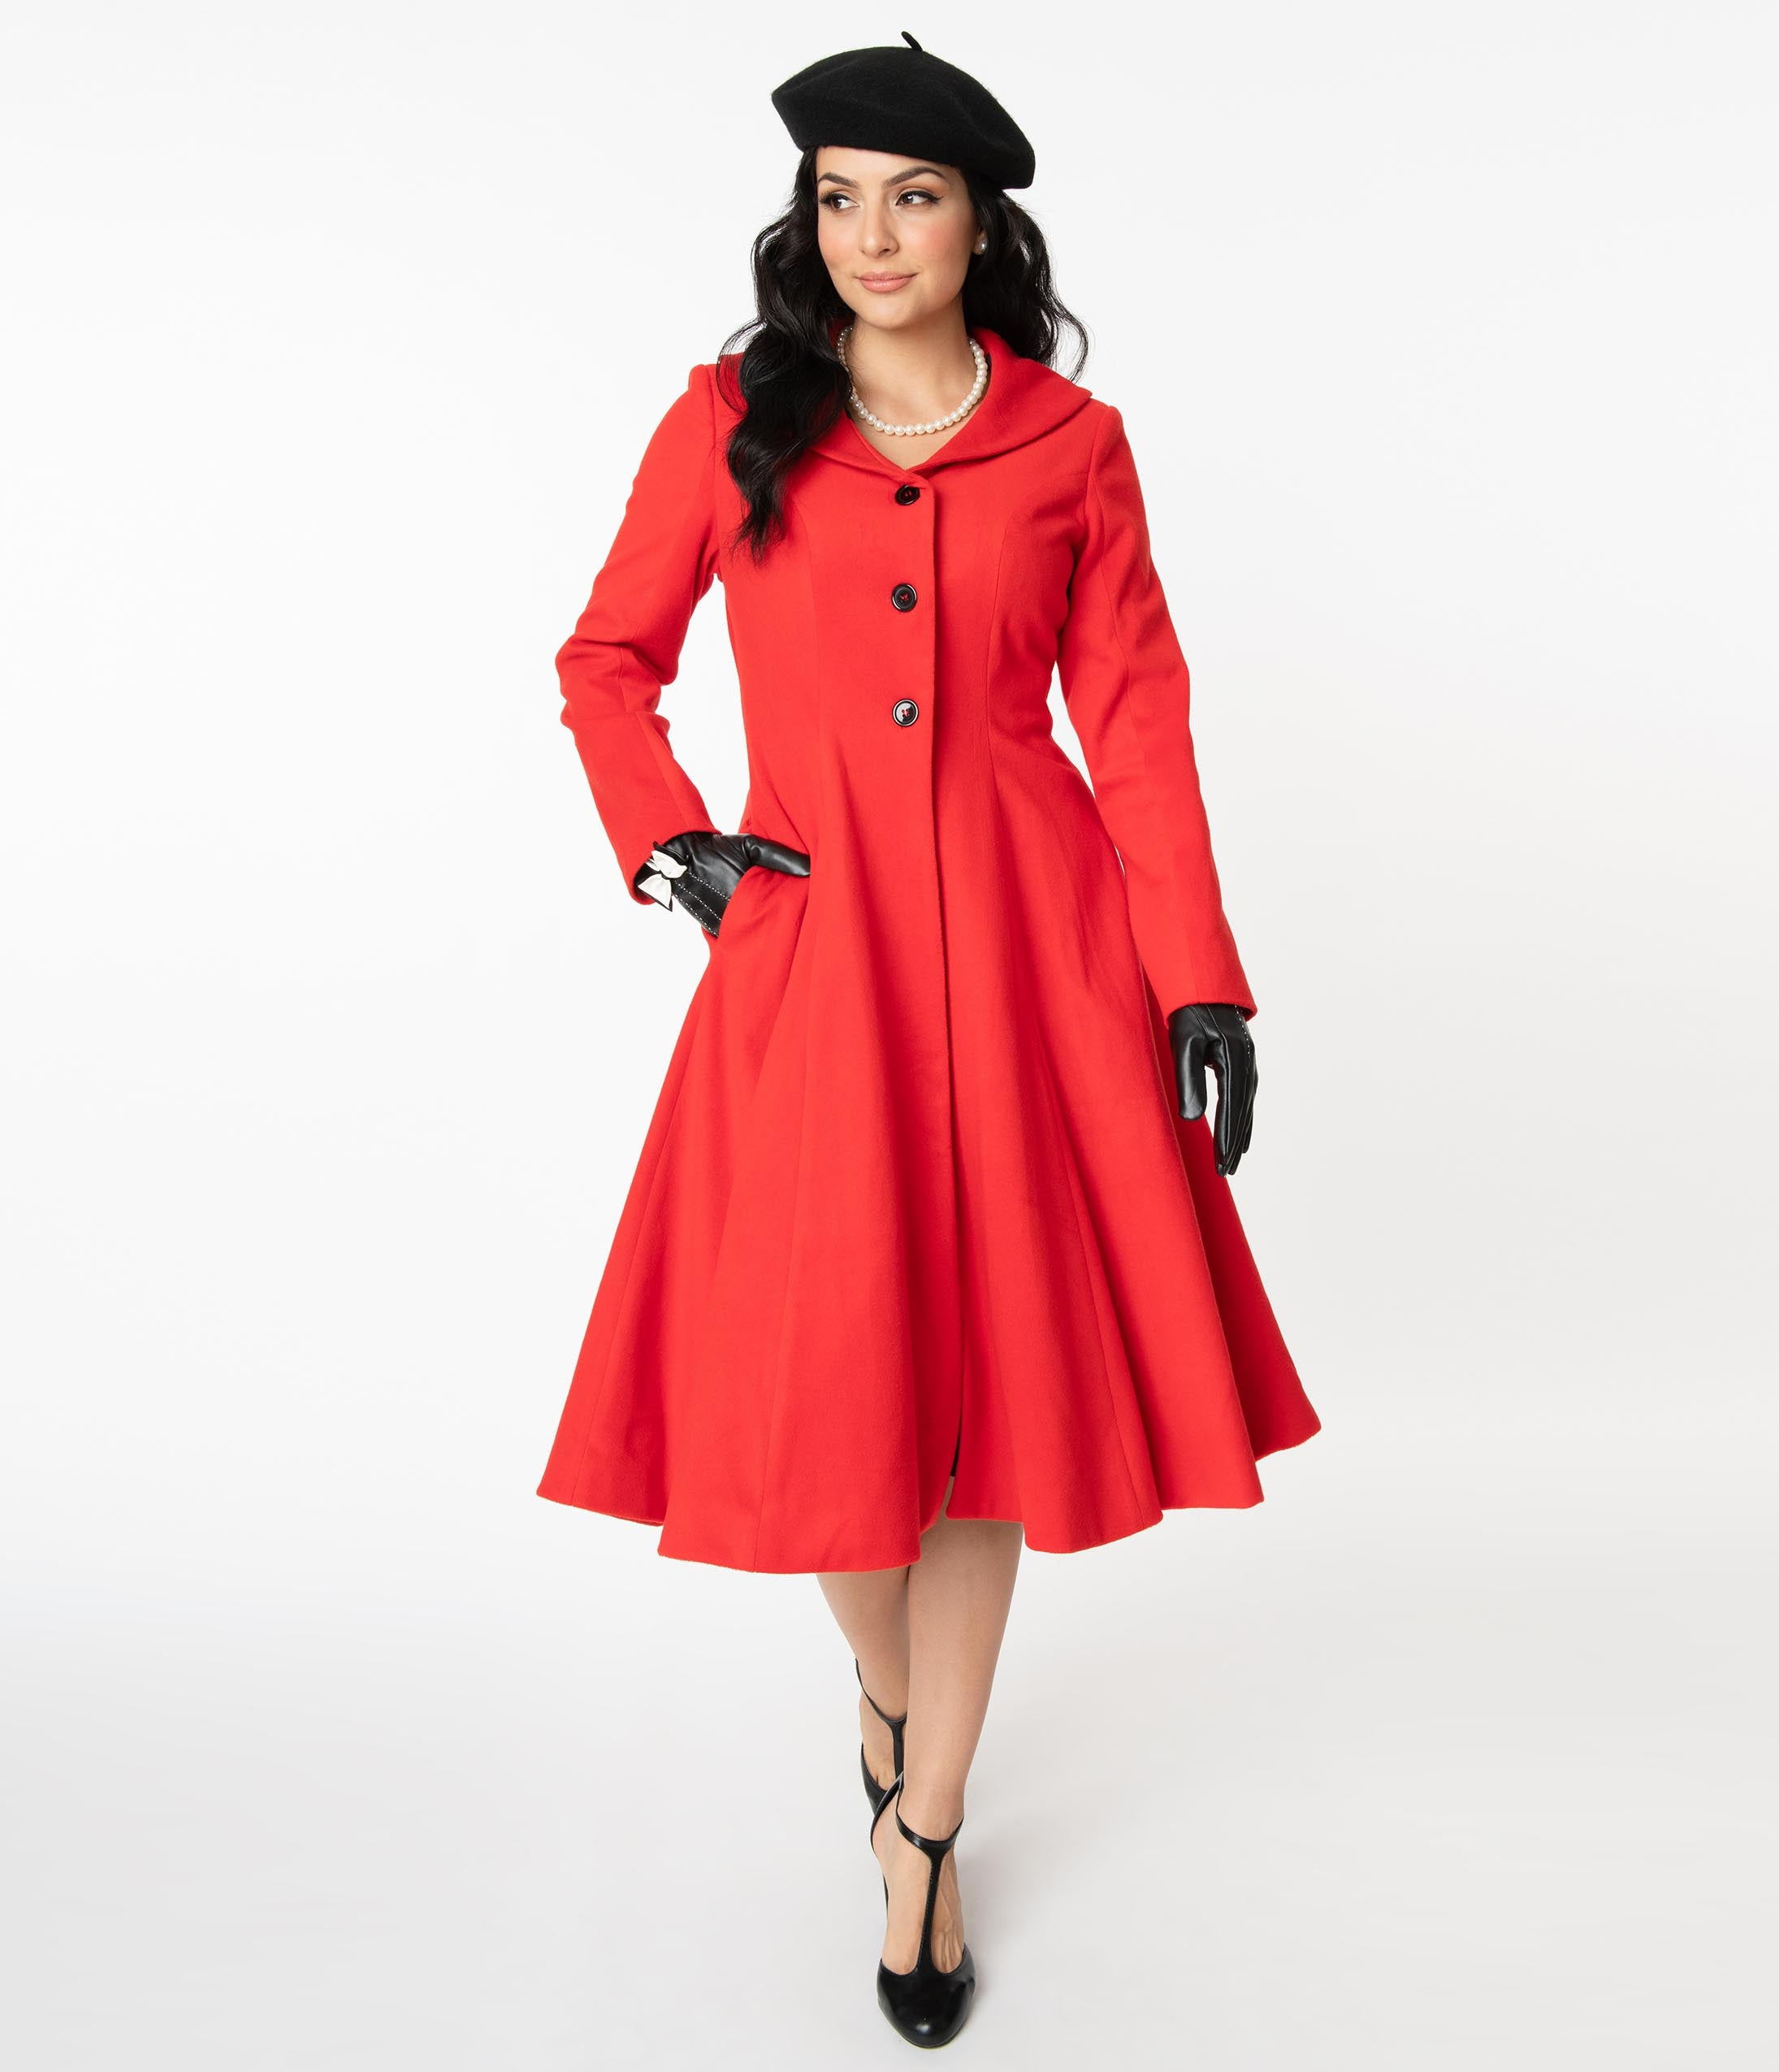 1950s Jackets, Coats, Bolero | Swing, Pin Up, Rockabilly Unique Vintage 1950S Style Red Dorian Swing Coat $148.00 AT vintagedancer.com